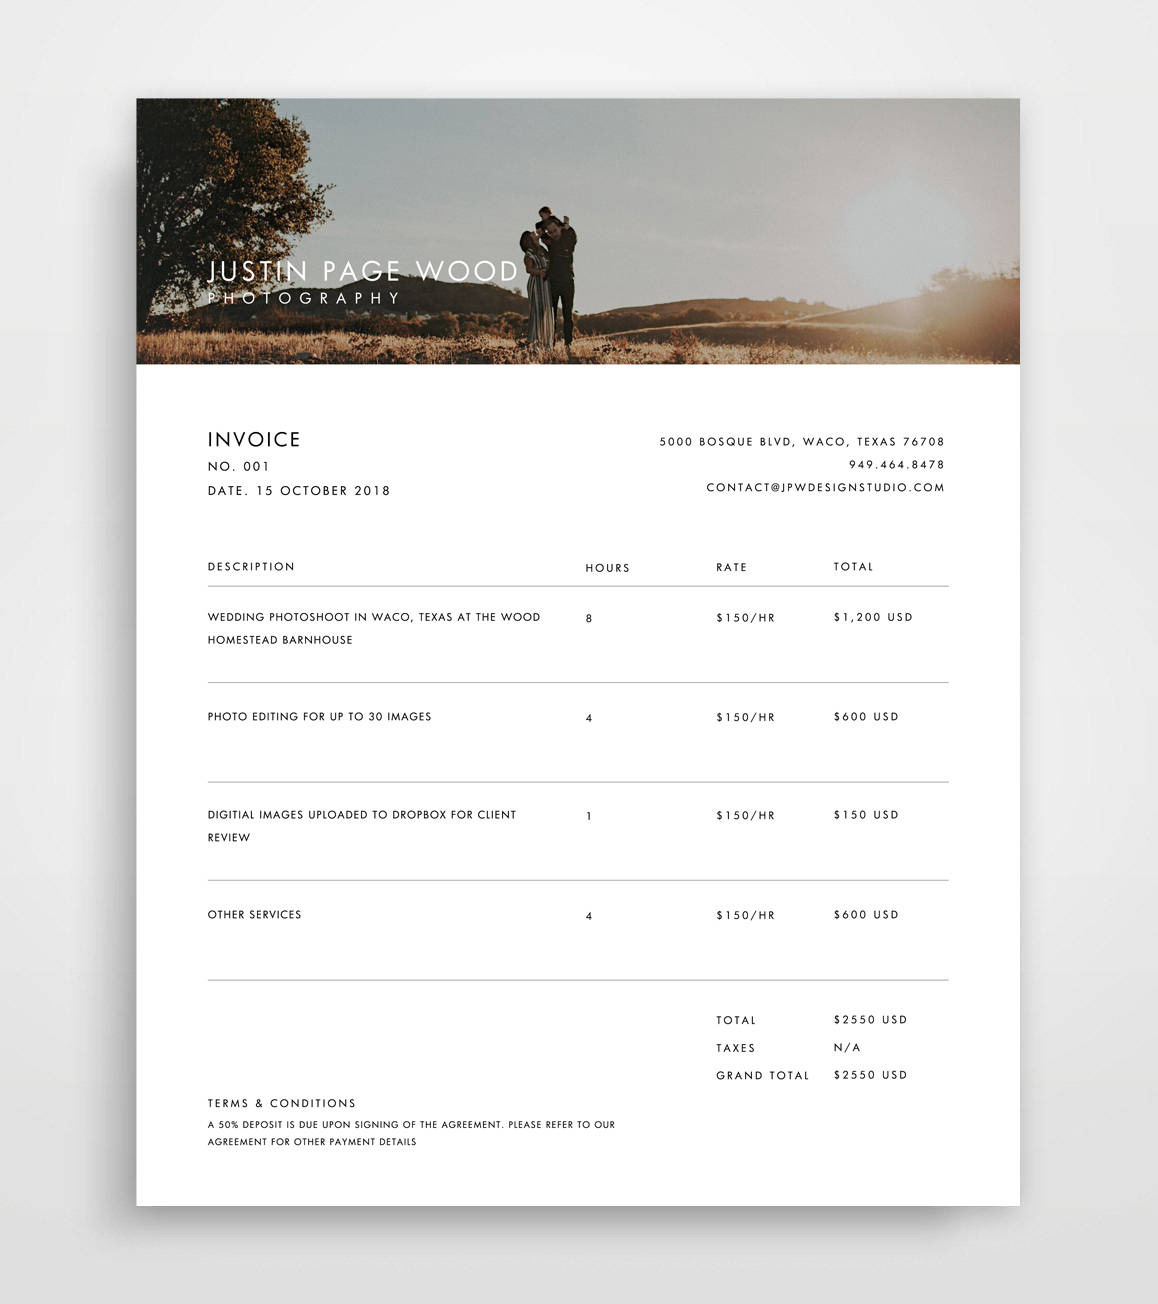 Invoice Photography Invoice Template Invoice Template | Etsy With Photography Invoice Template